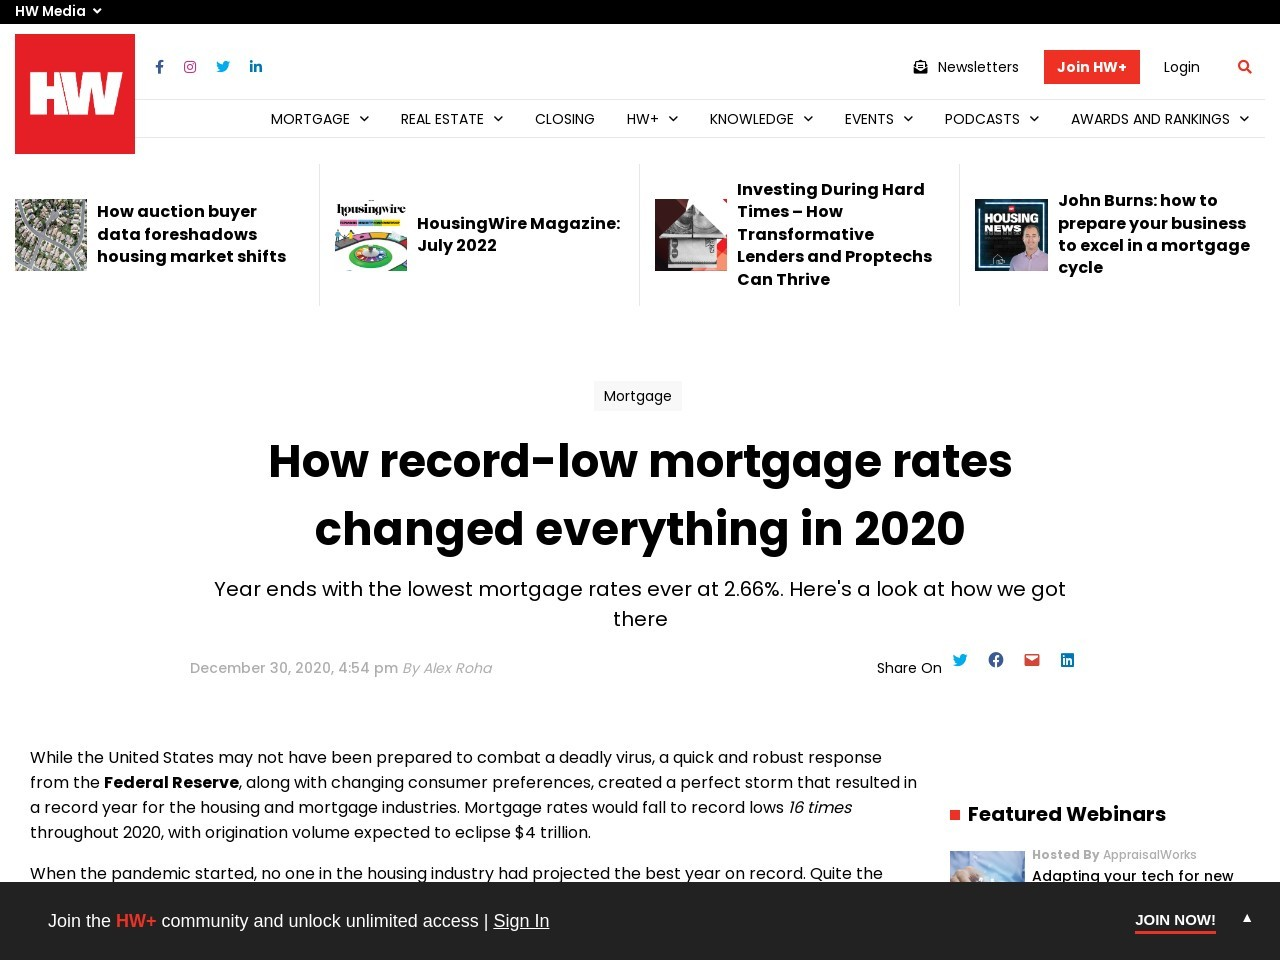 How record-low mortgage rates changed everything in 2020 – HousingWire